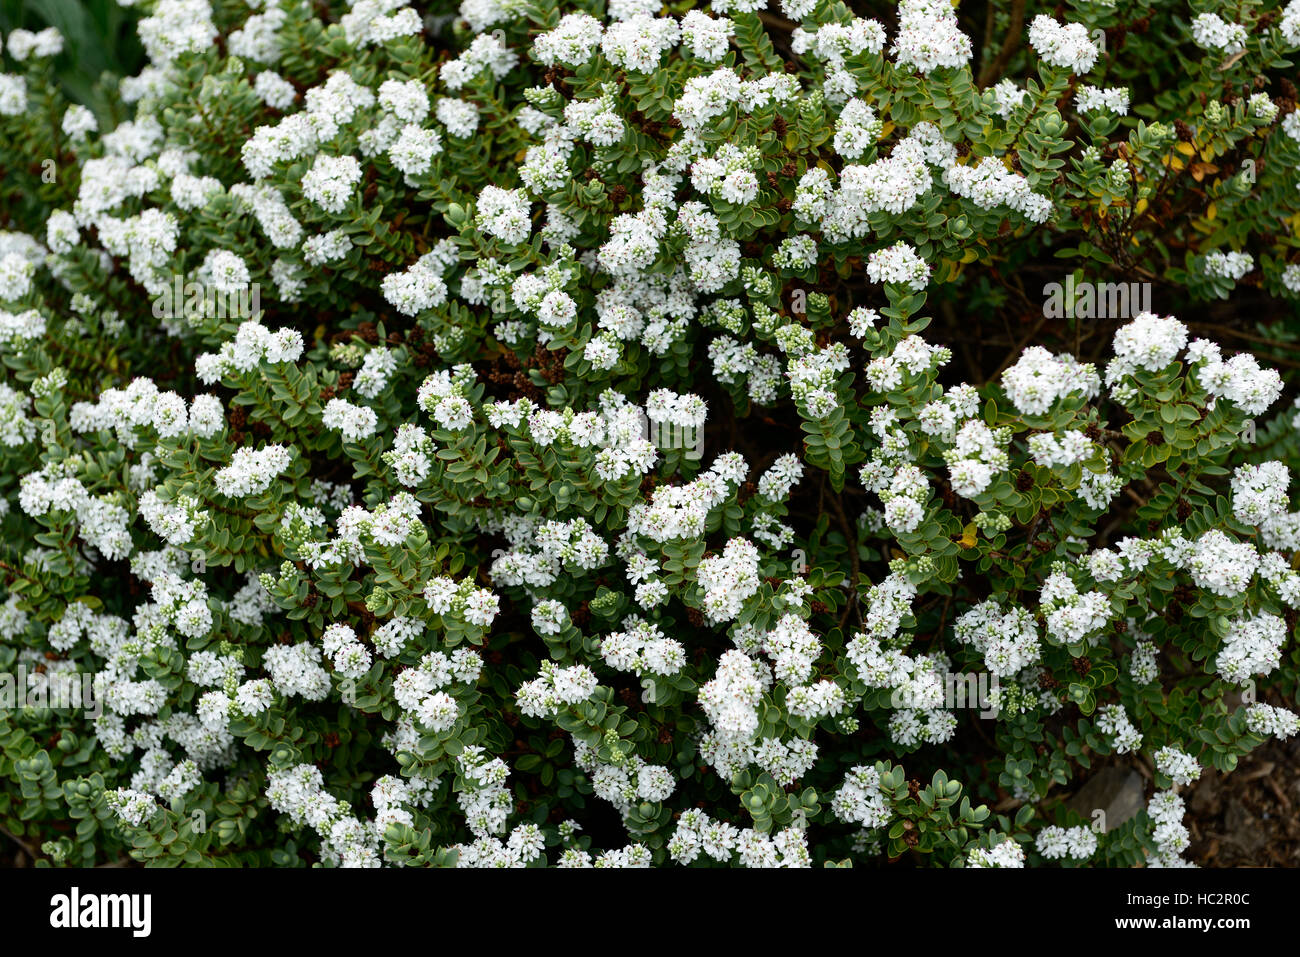 White hebe stock photos white hebe stock images alamy hebe cockayniana hebes white flower flowers flowering shrub shrubs new zealand native flora rm floral mightylinksfo Gallery